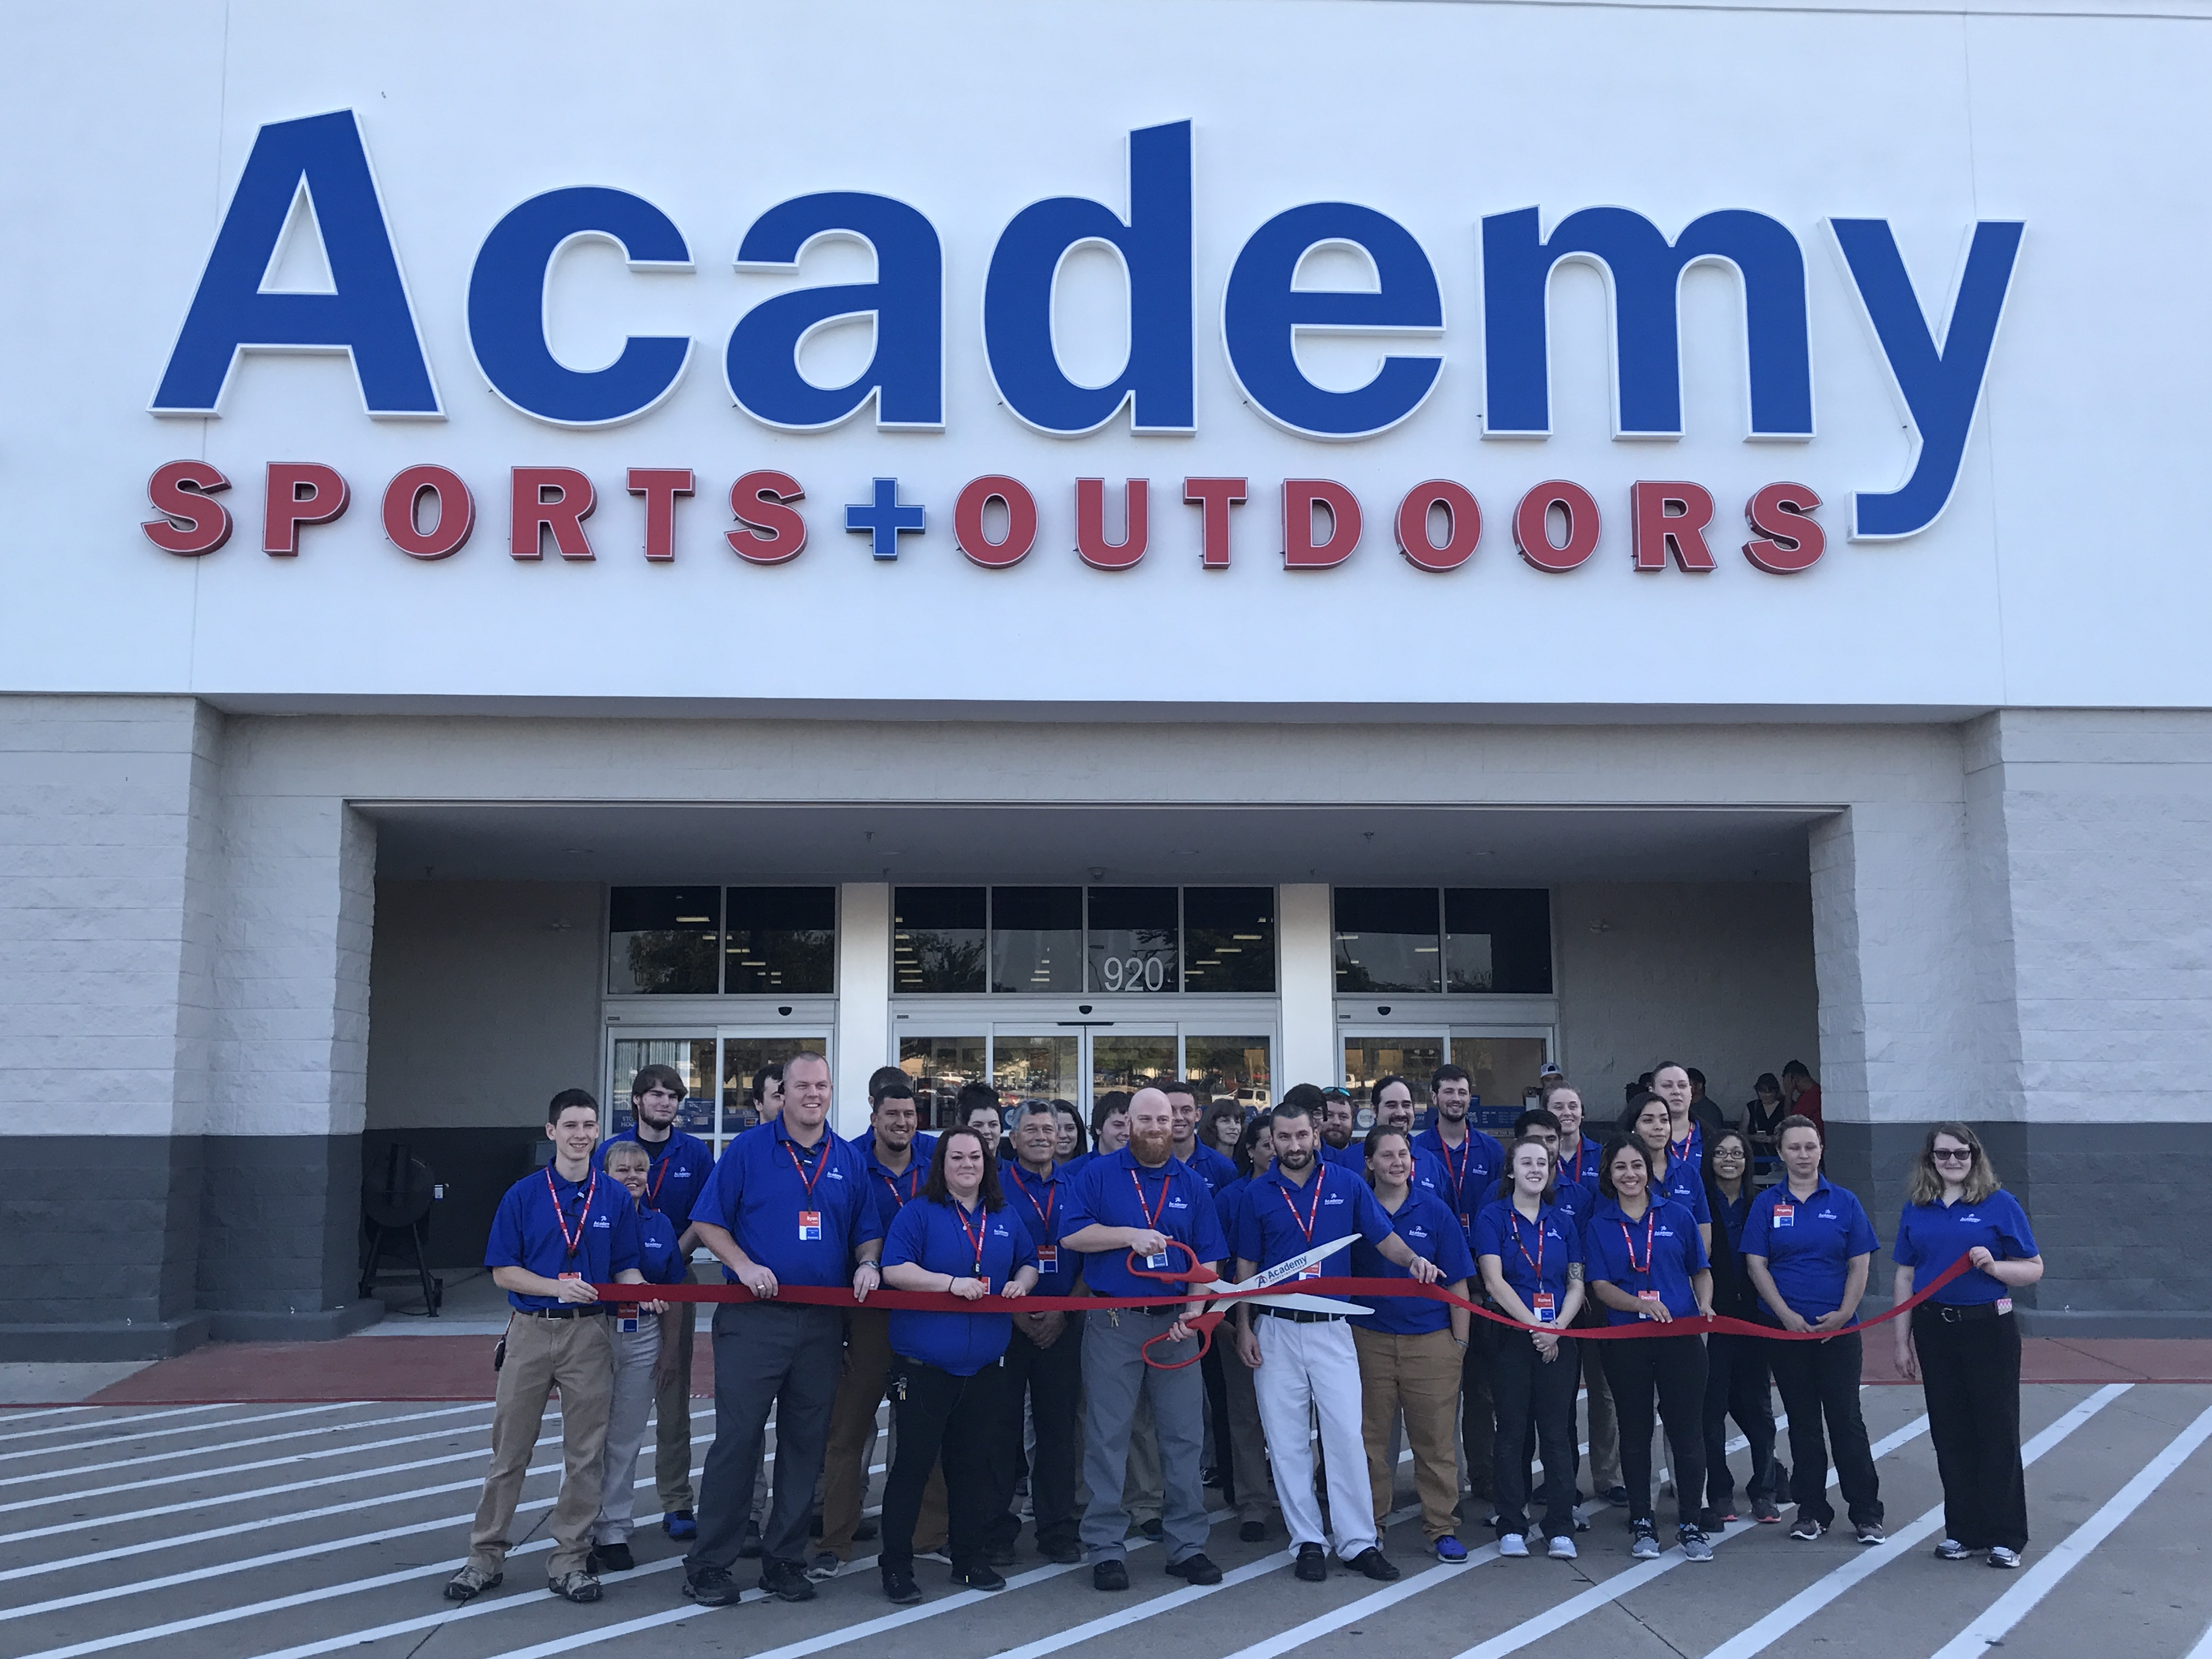 f039d750ee3 Academy Sports + Outdoors makes a splash in the community - Blue ...